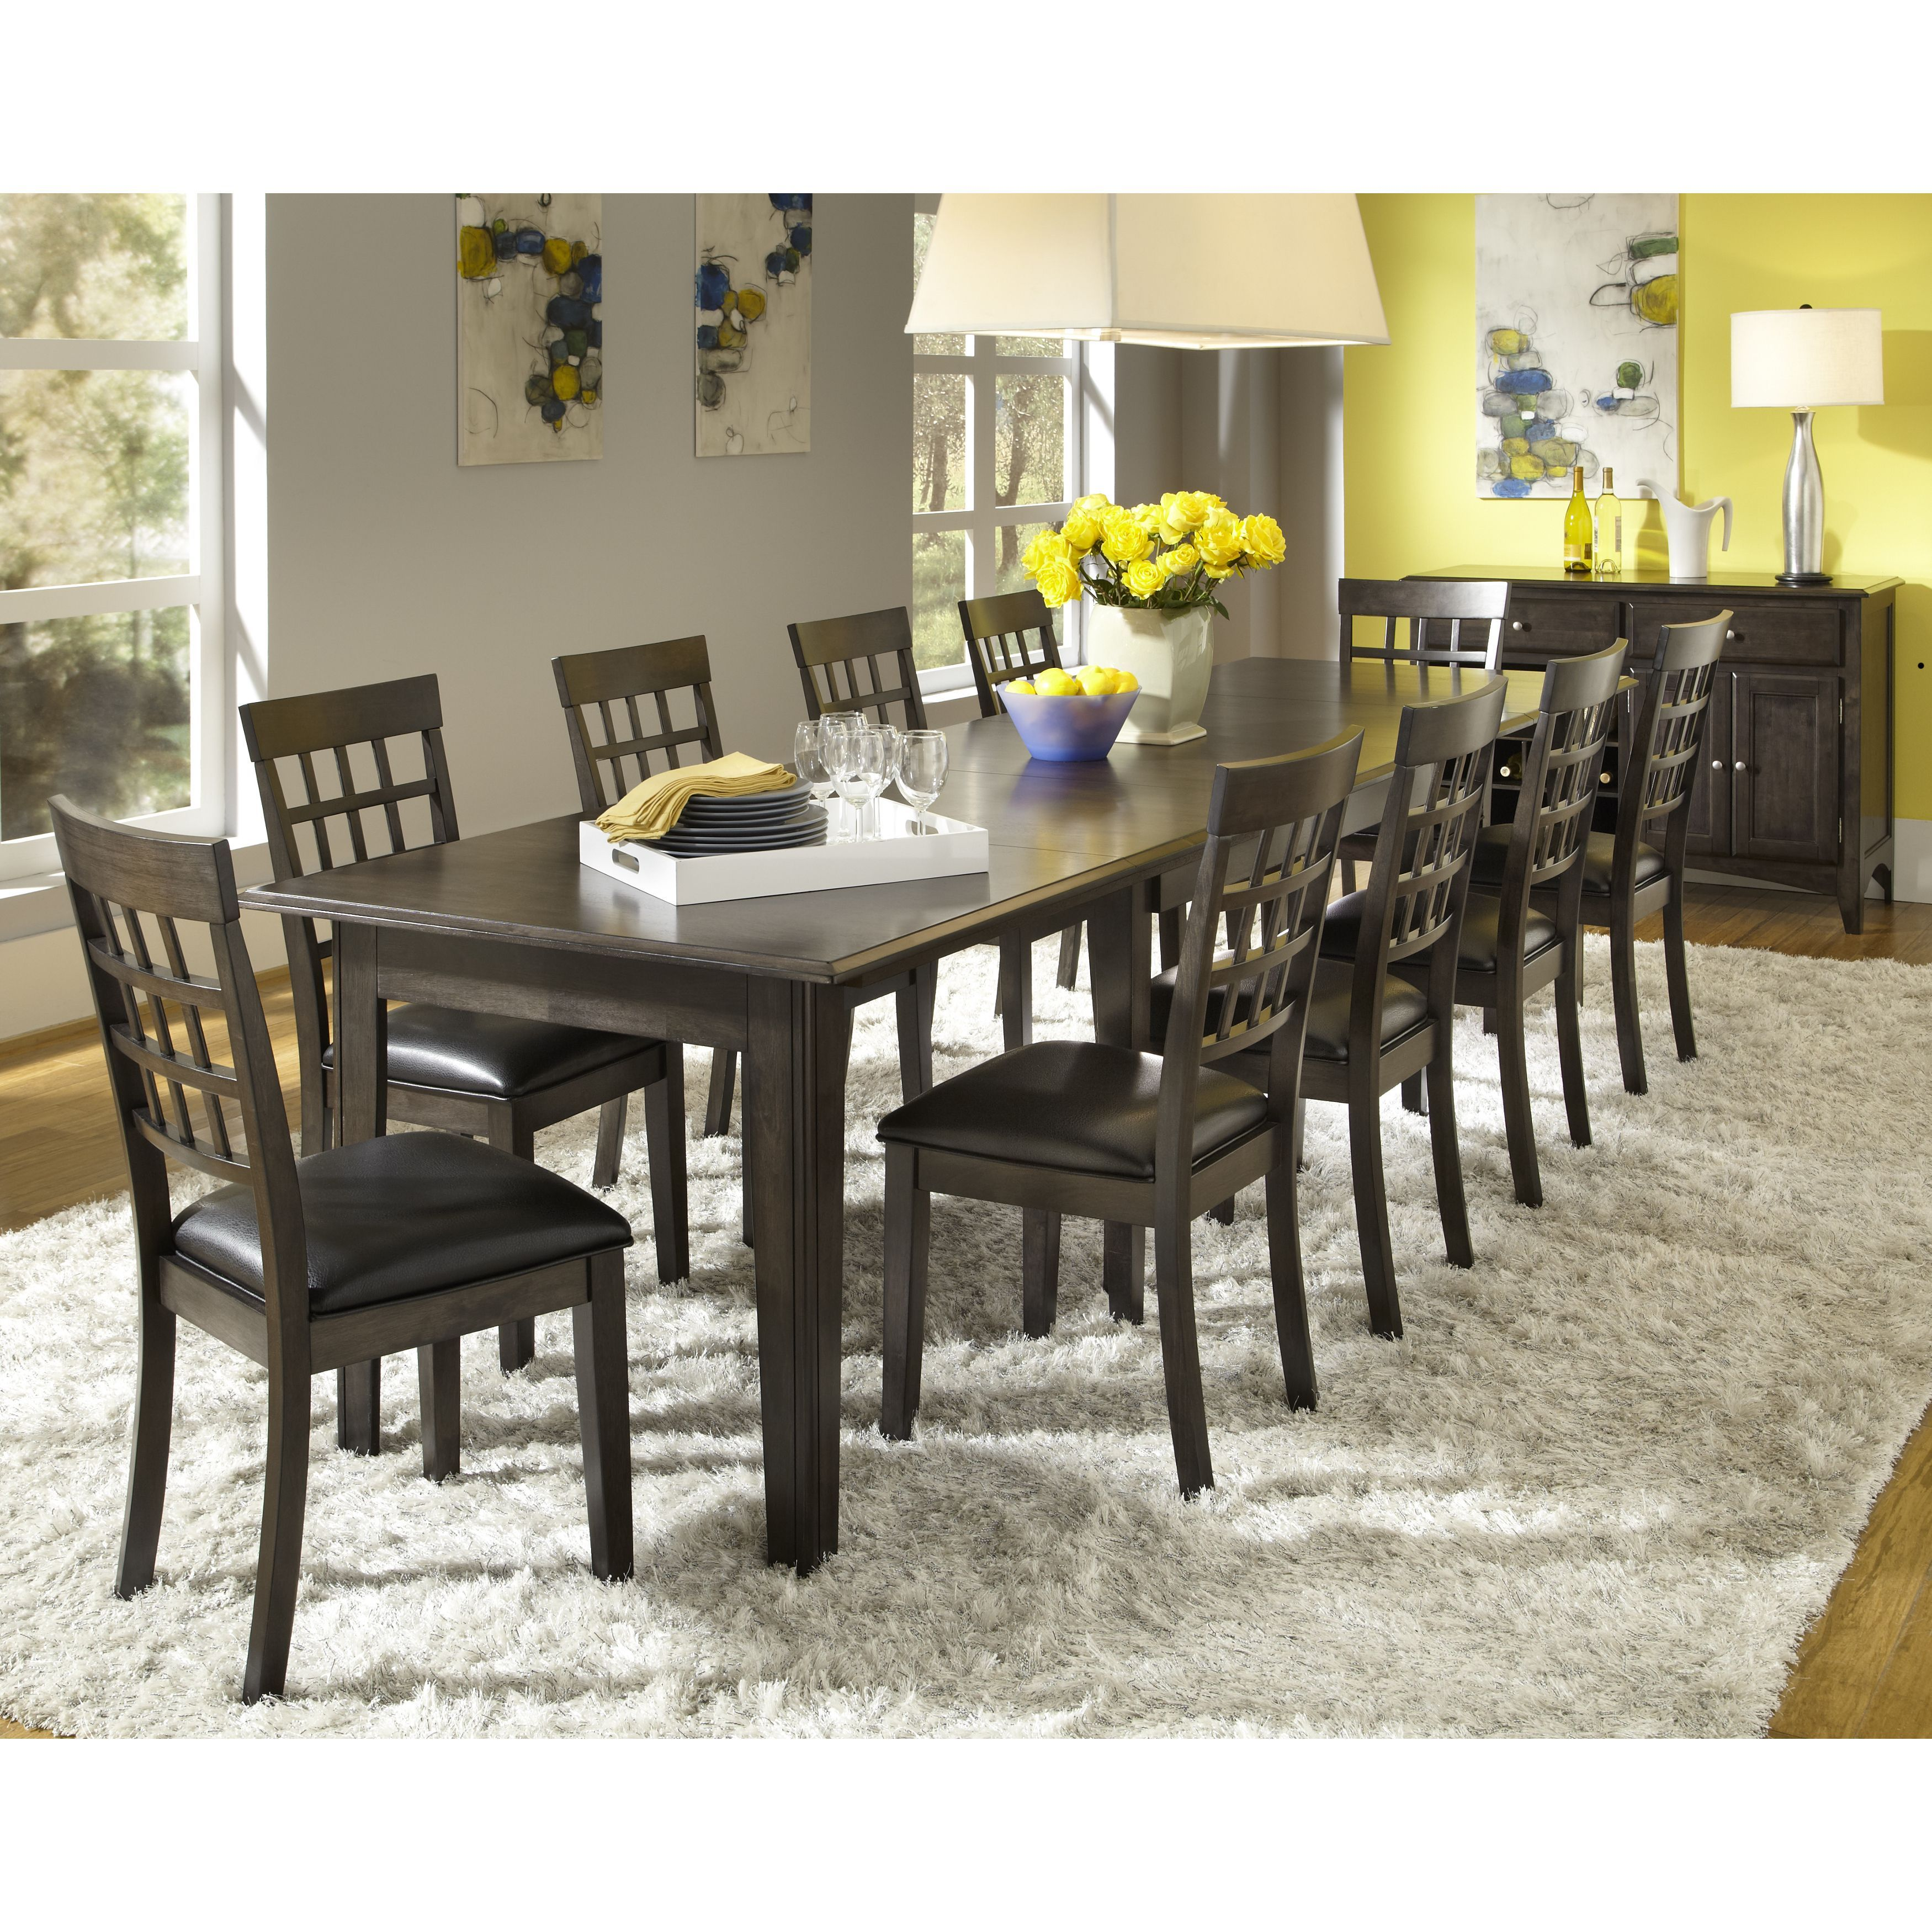 Overstock Com Online Shopping Bedding Furniture Electronics Jewelry Clothing More Dining Room Sets Solid Wood Dining Set Dining Room Furniture